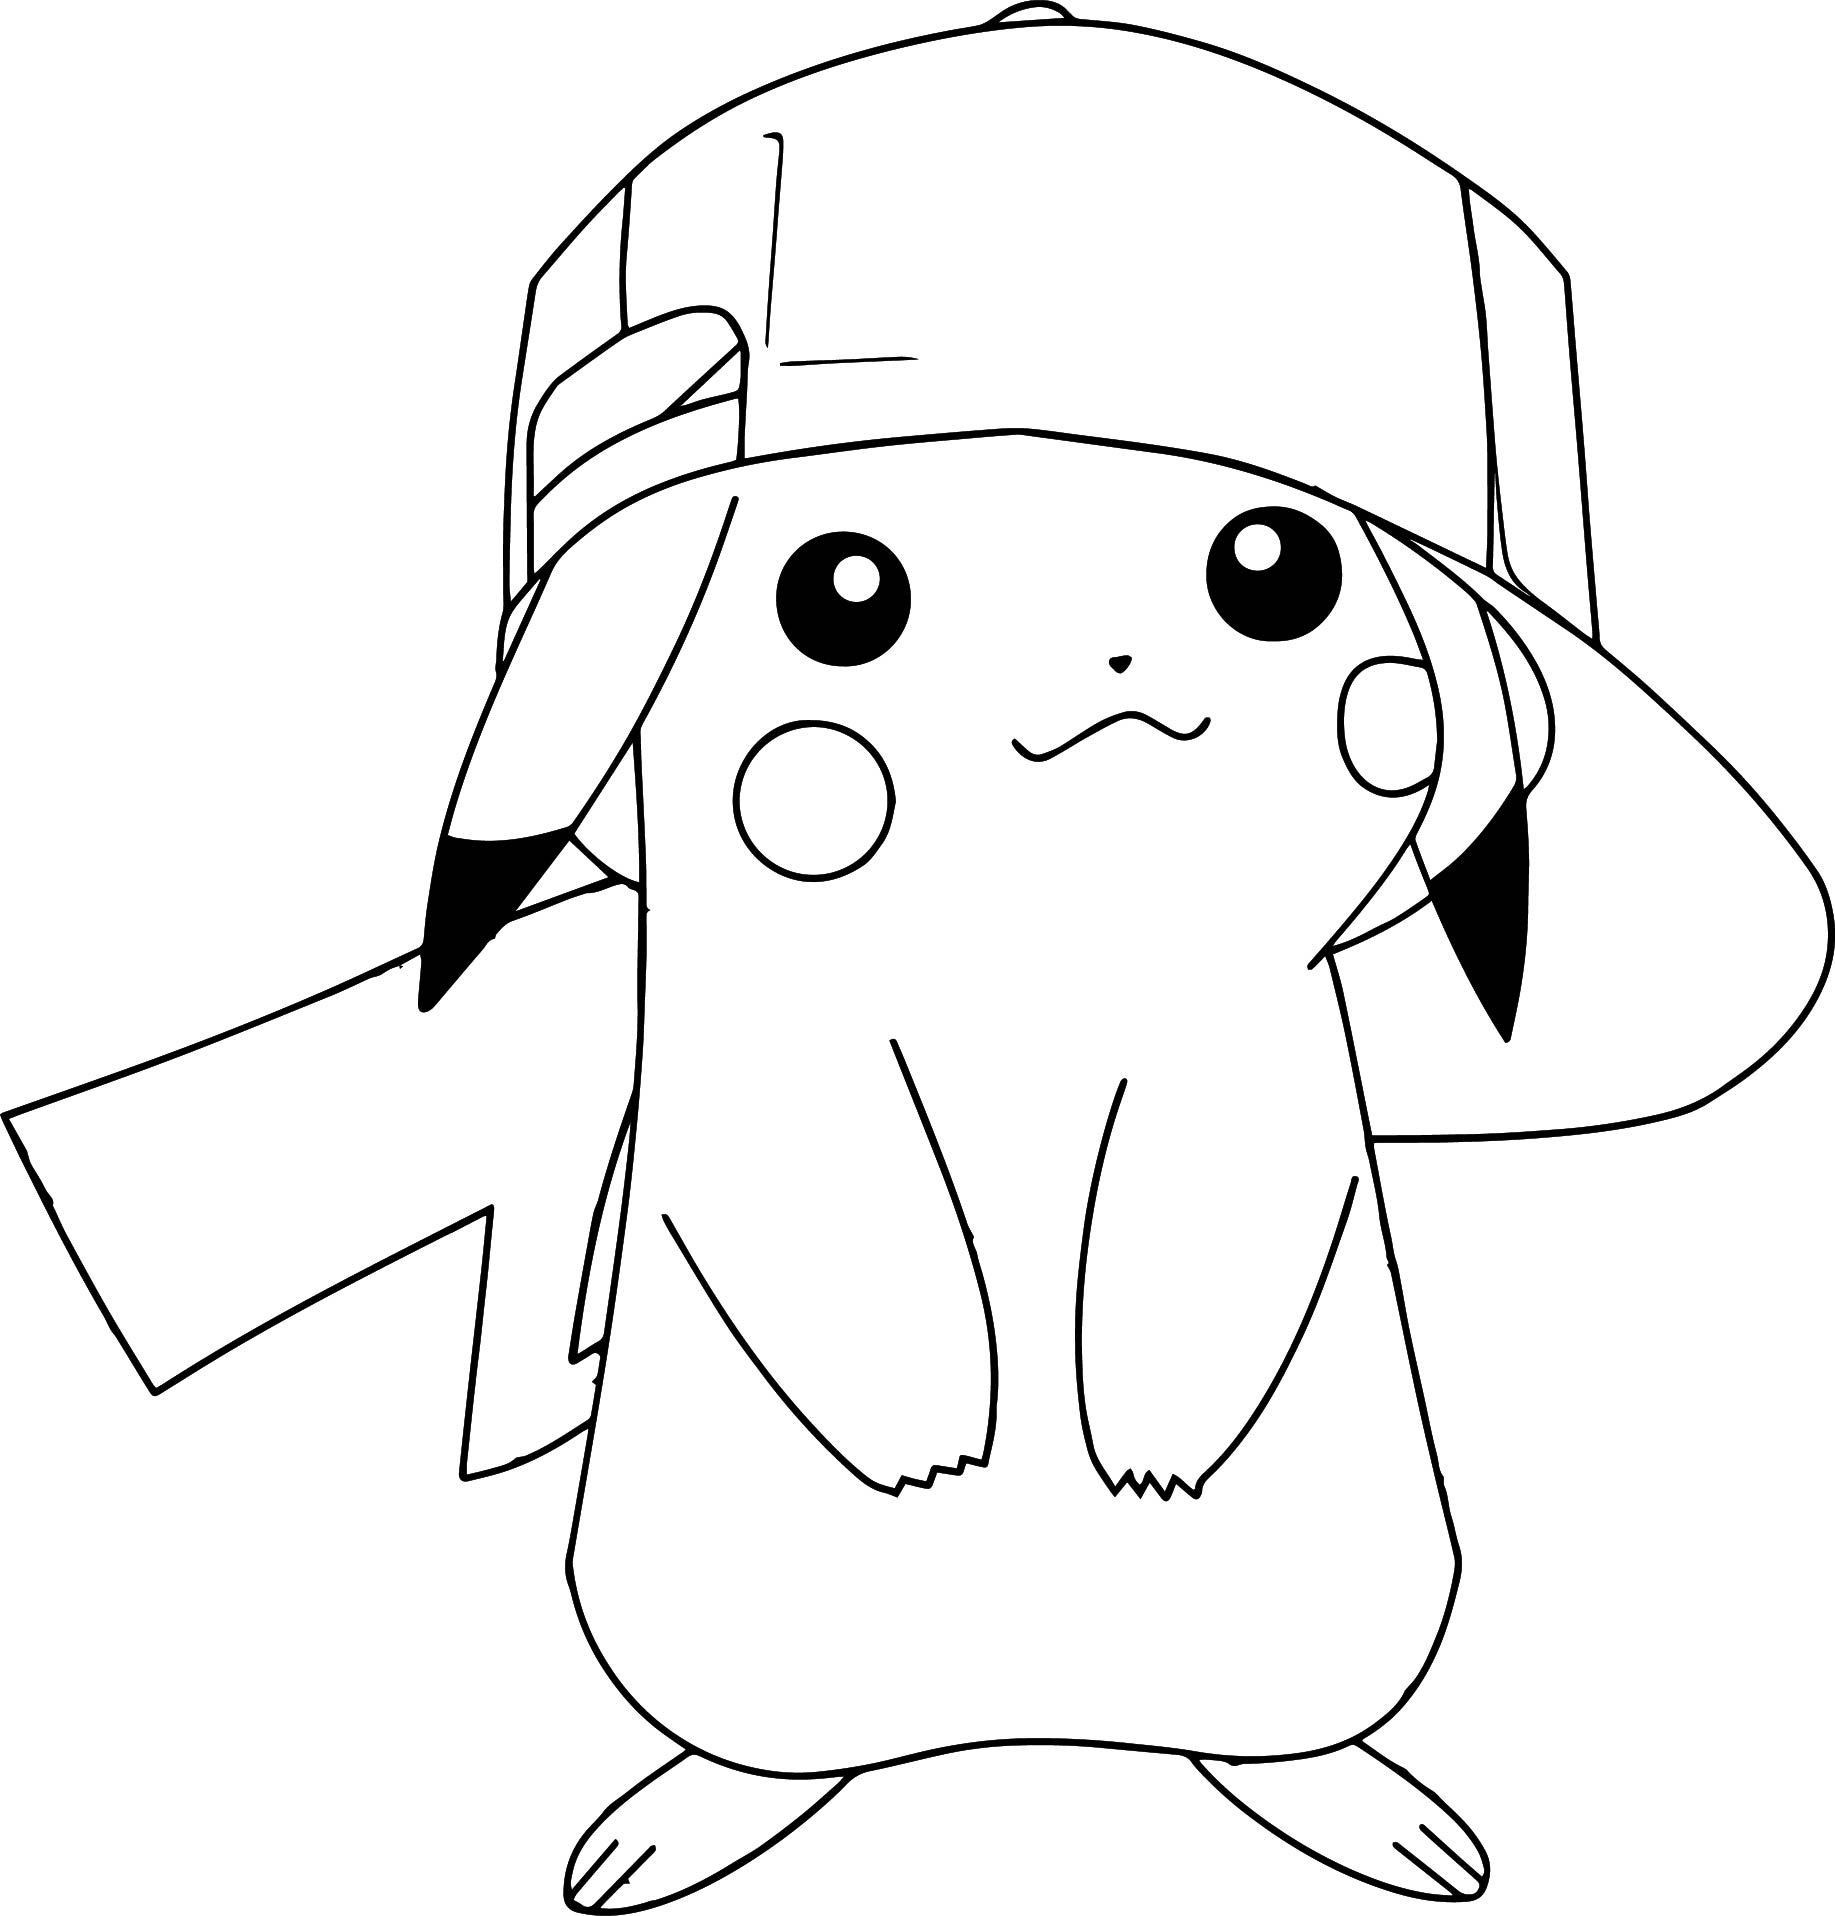 Pikachu Christmas Hat Coloring Pages From The Thousand Photographs On The Internet Conce Pikachu Coloring Page Pokemon Coloring Sheets Pokemon Coloring Pages